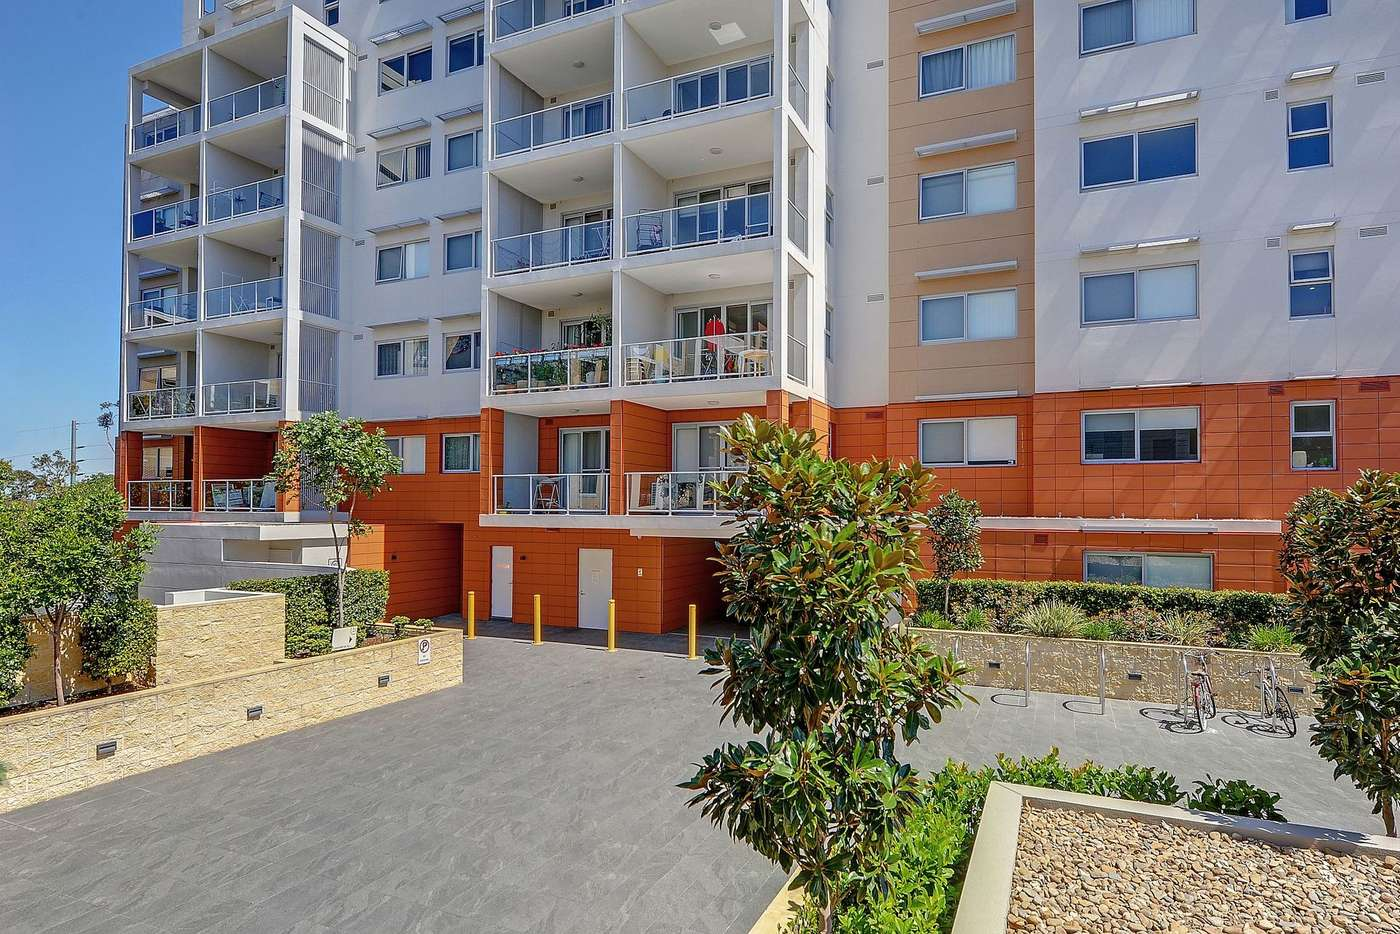 Main view of Homely apartment listing, 207/3 Pretoria Parade, Hornsby NSW 2077